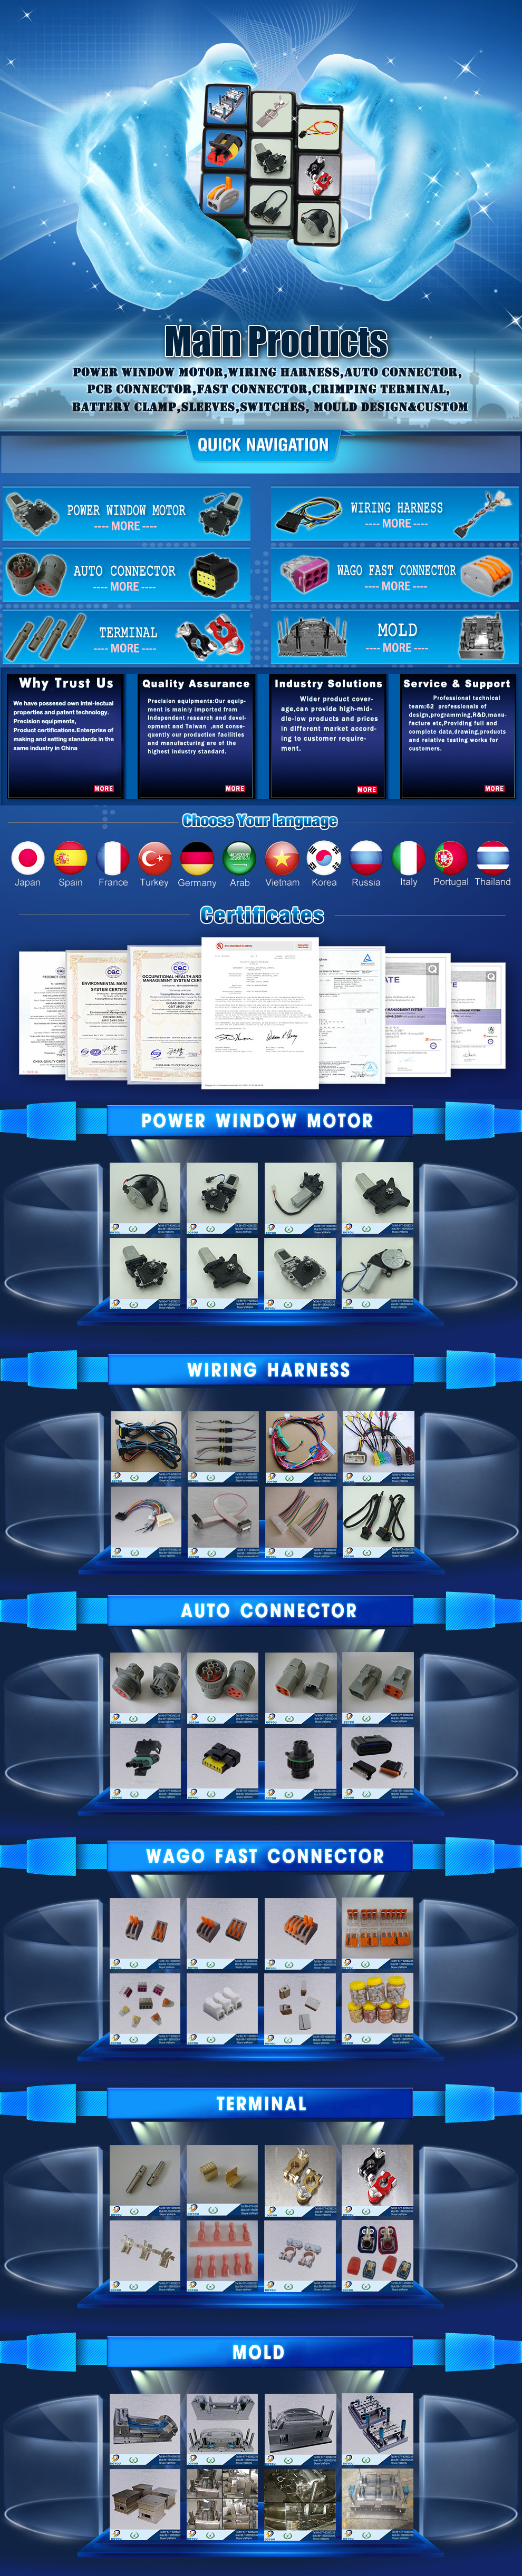 Yueqing Doyou Trading Co Ltd Wiring Harnessconnector Boeing Wire Harness